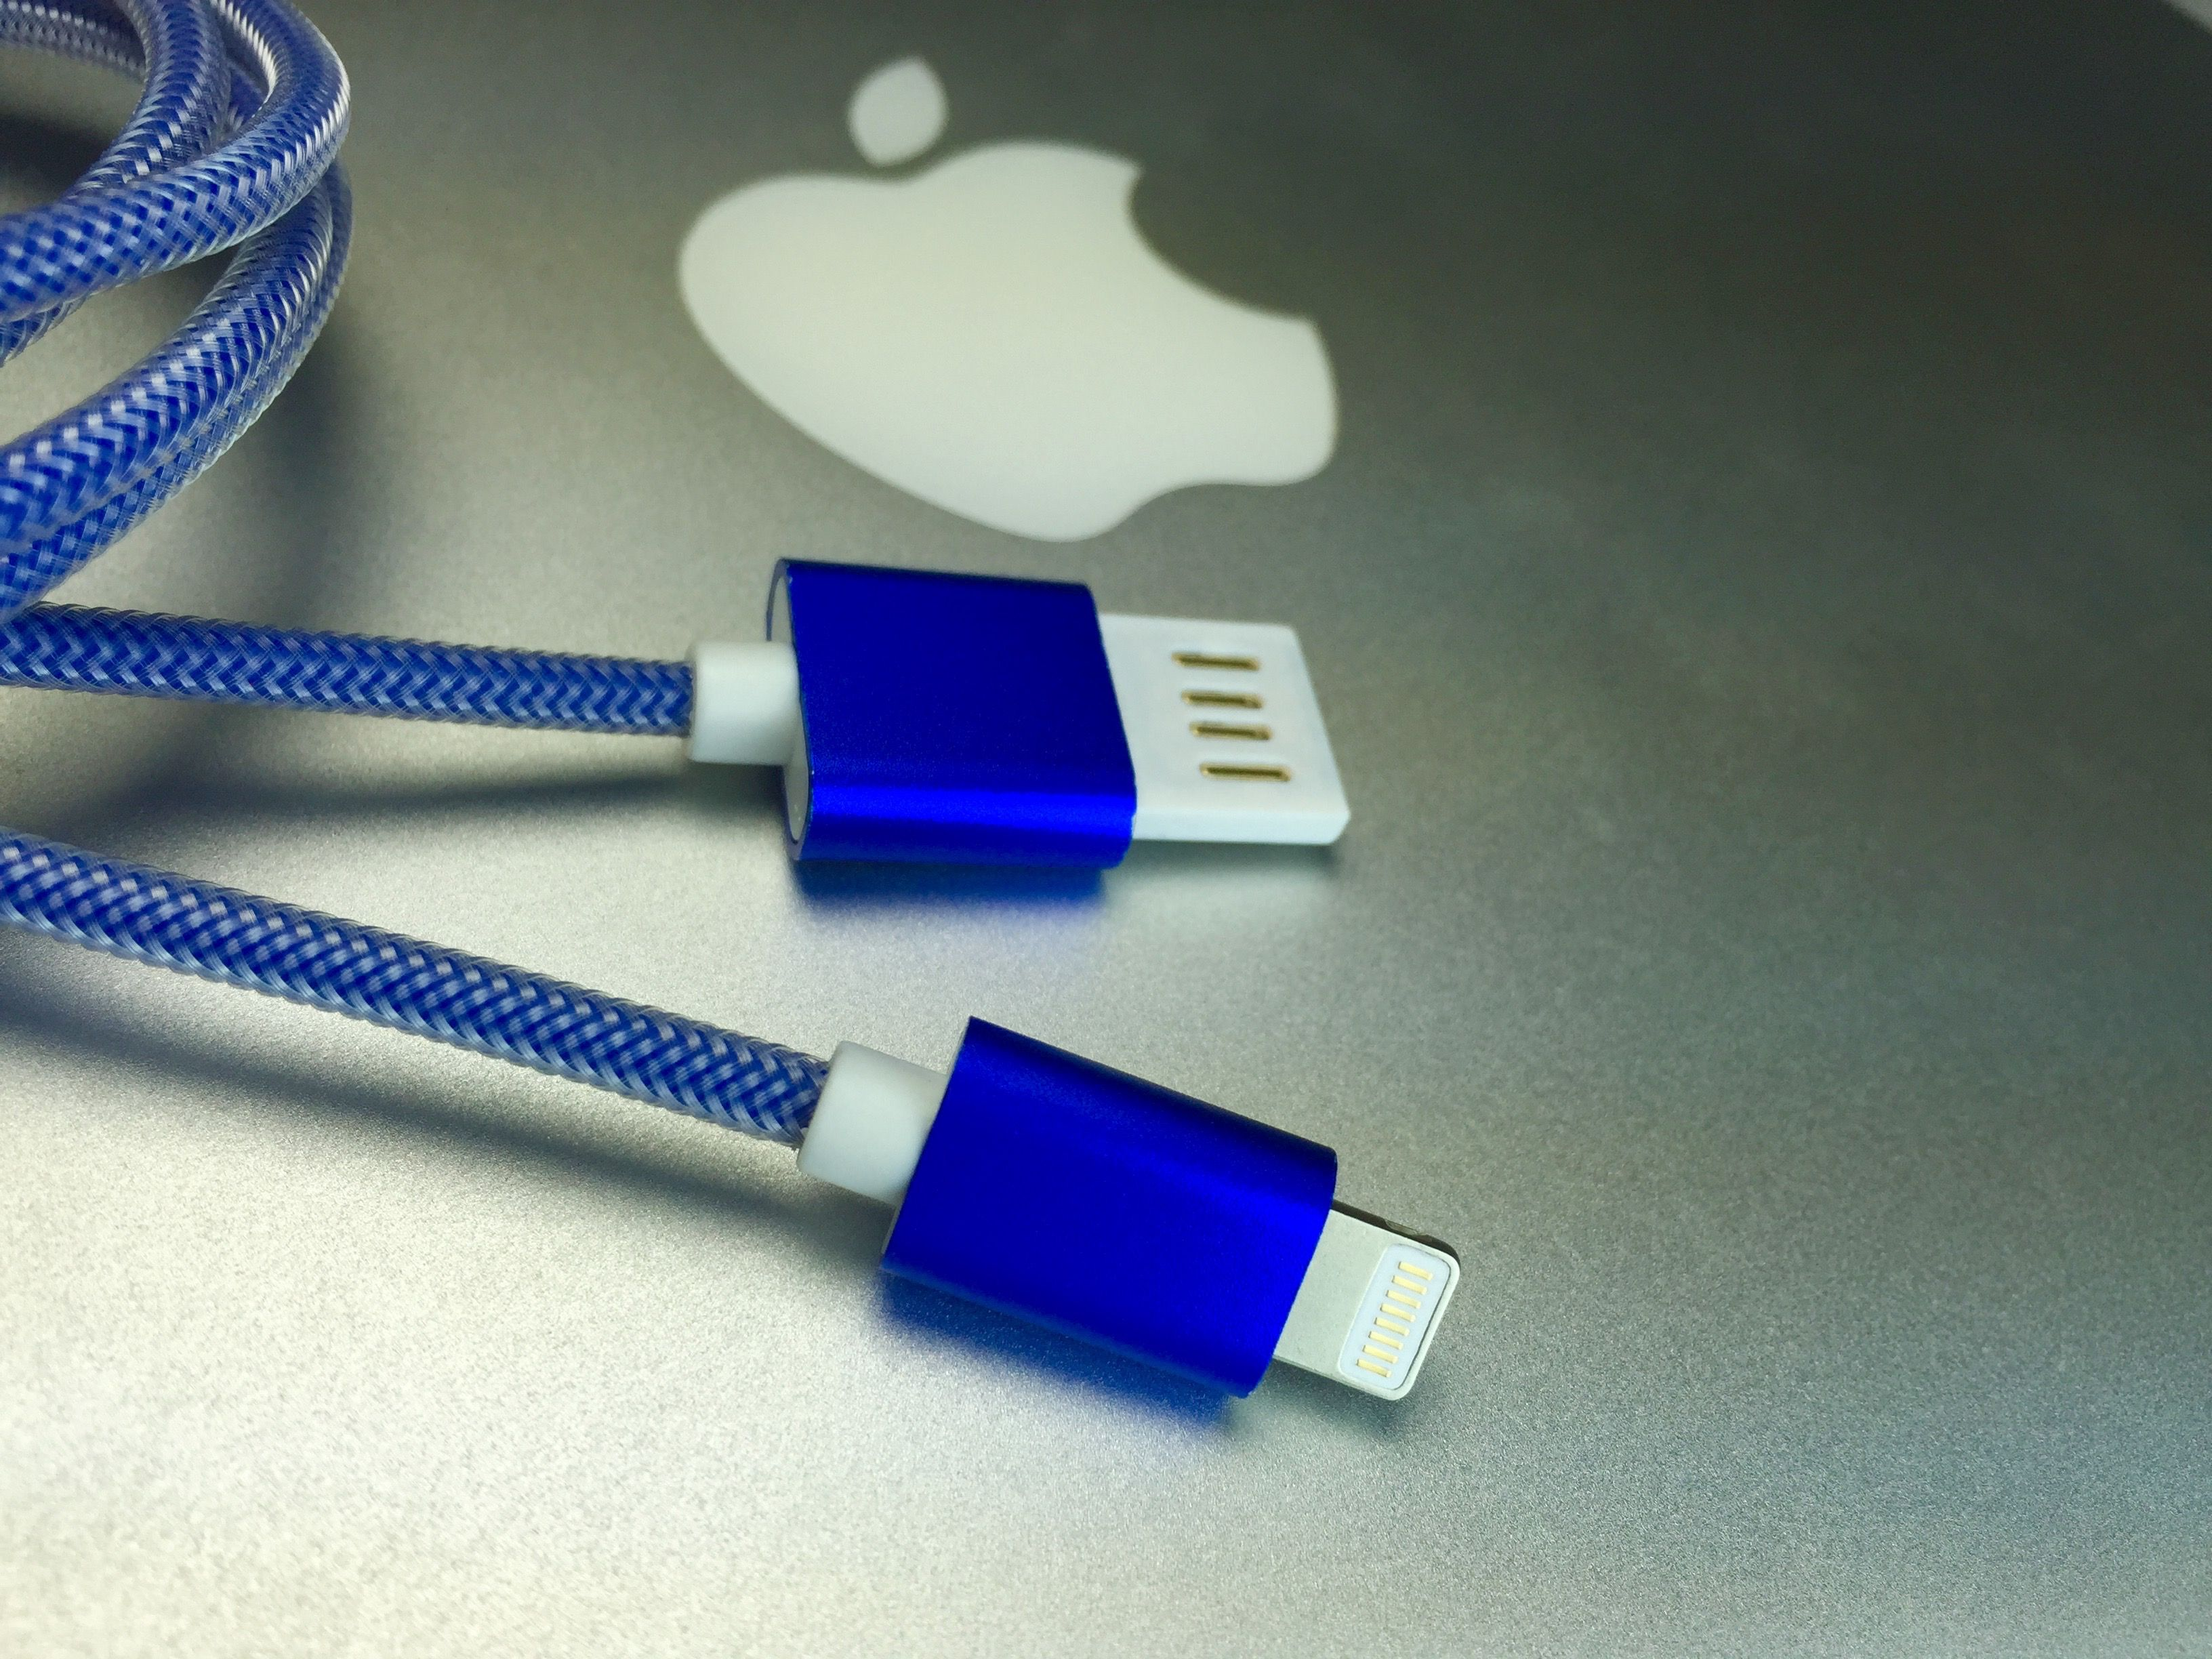 dio Naked Reversible USB cables for Lightning and Micro by